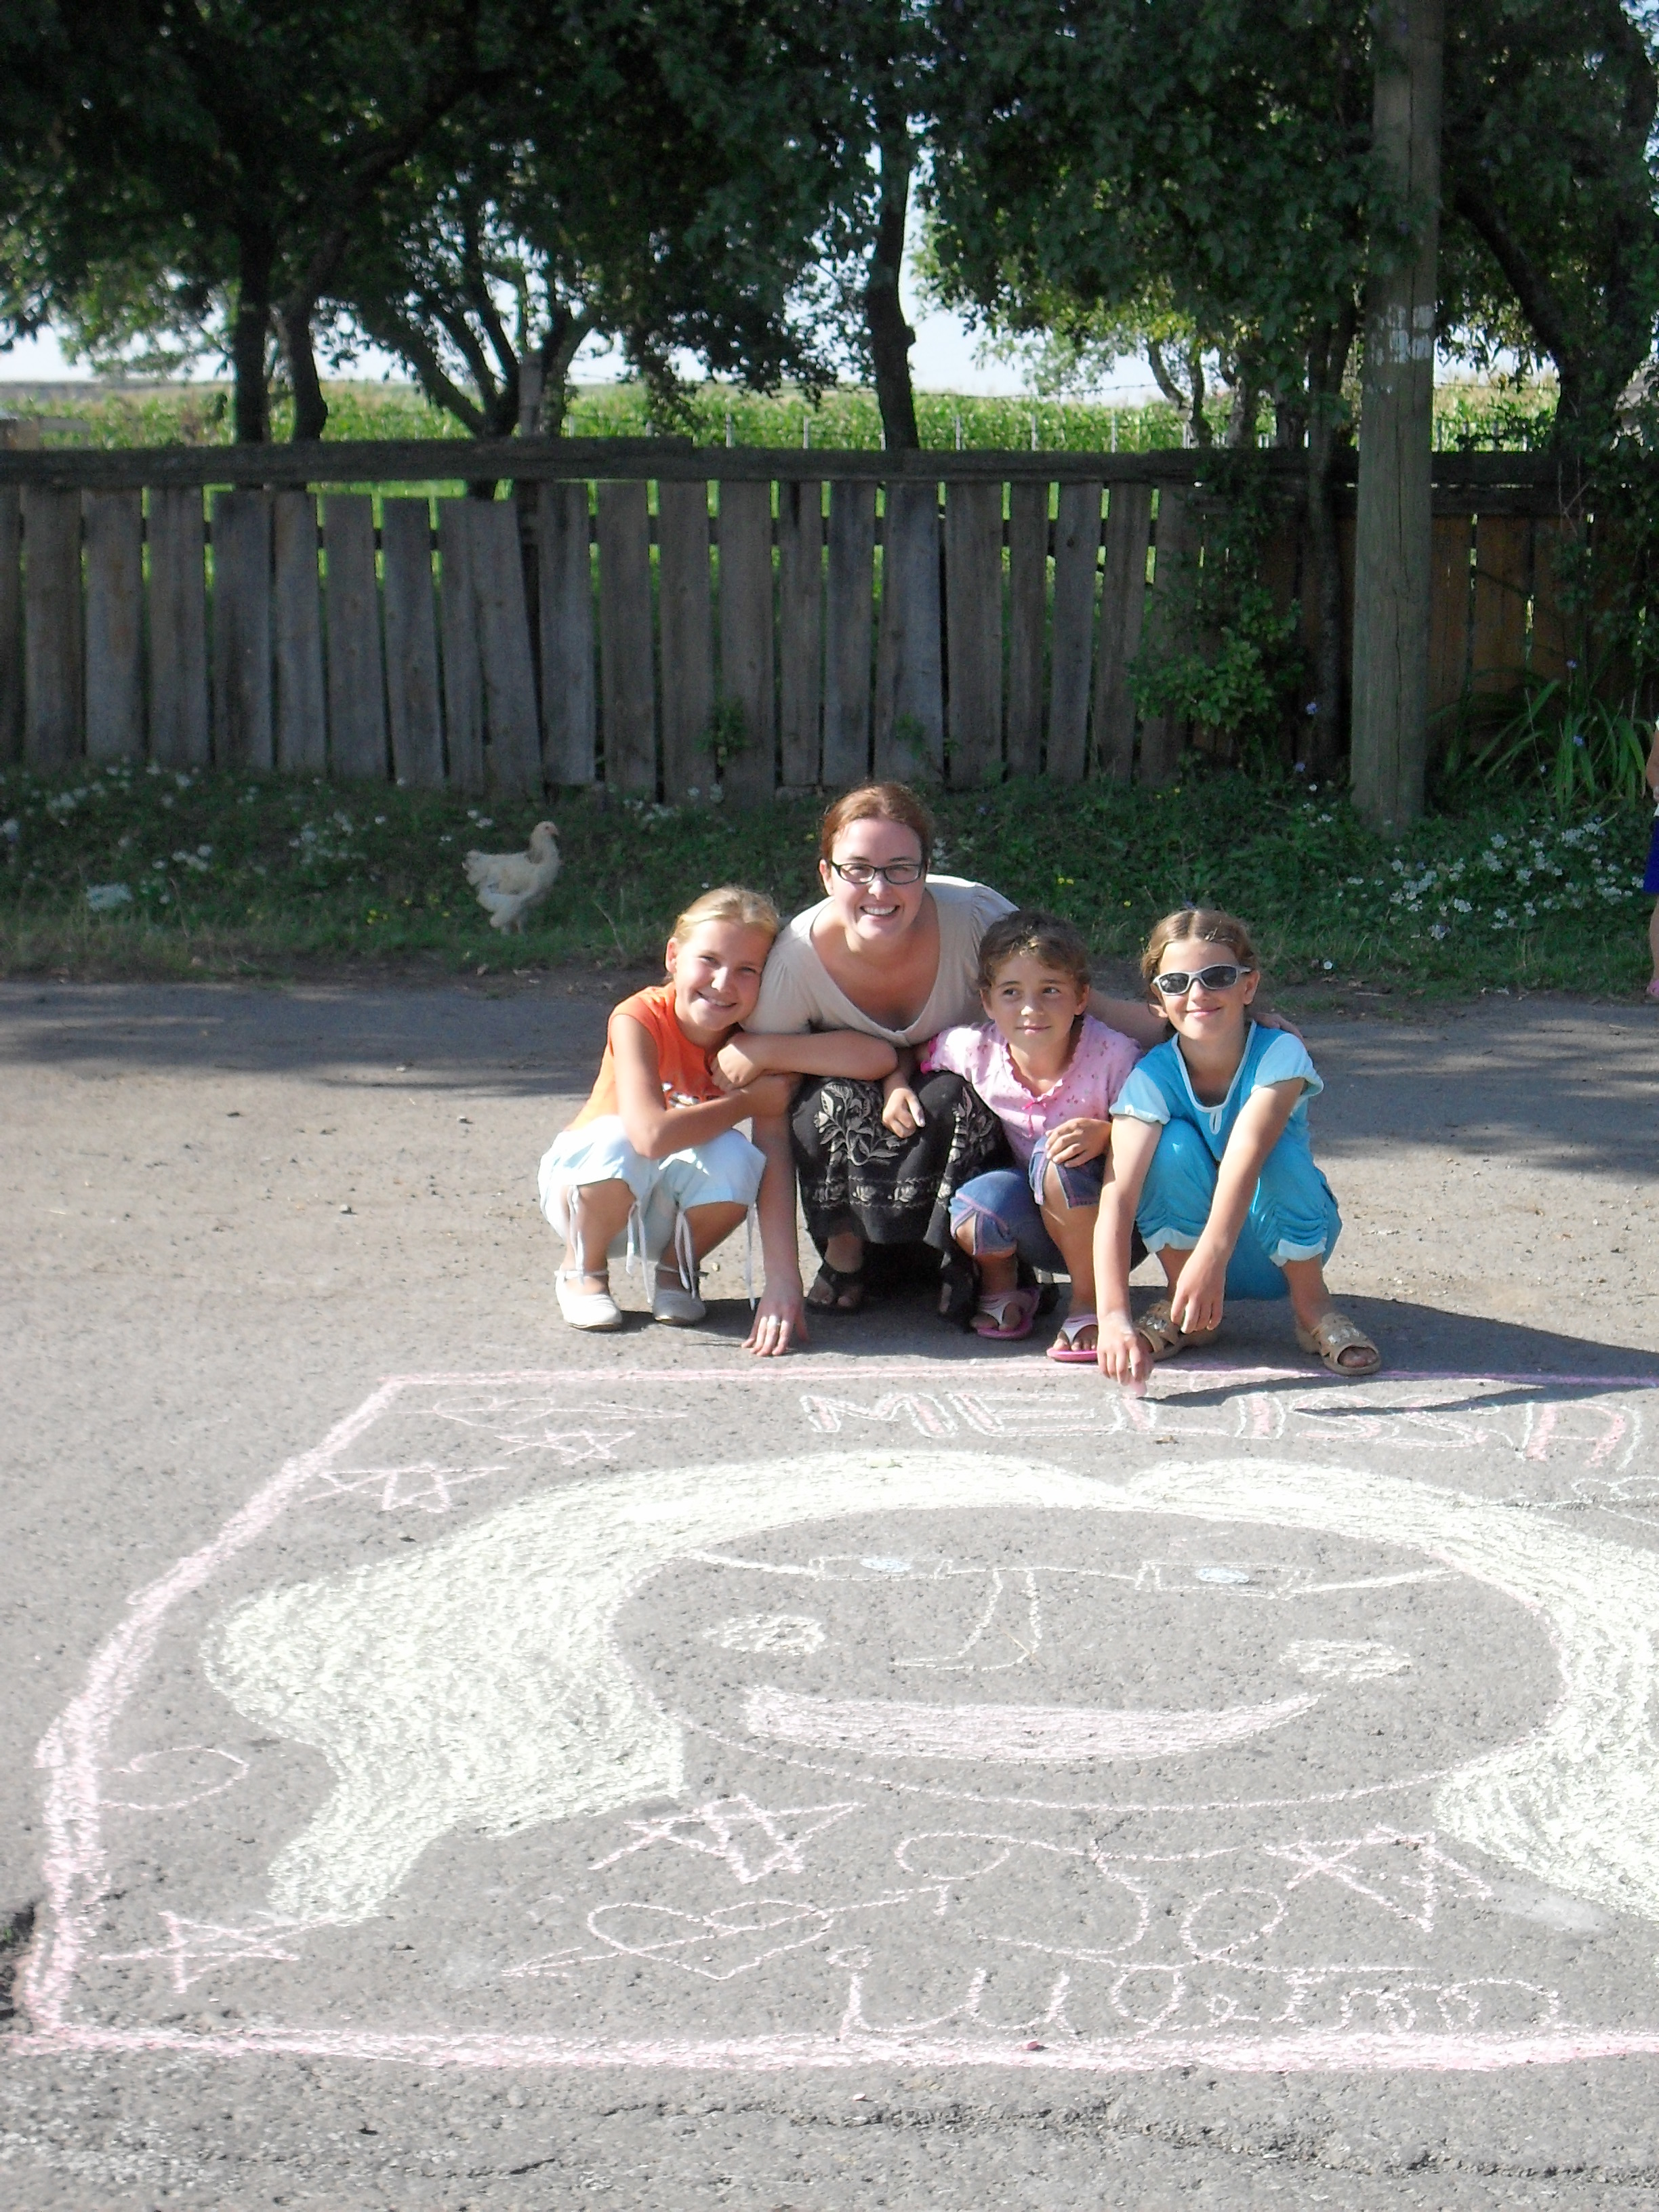 Yes, that is me in chalk.